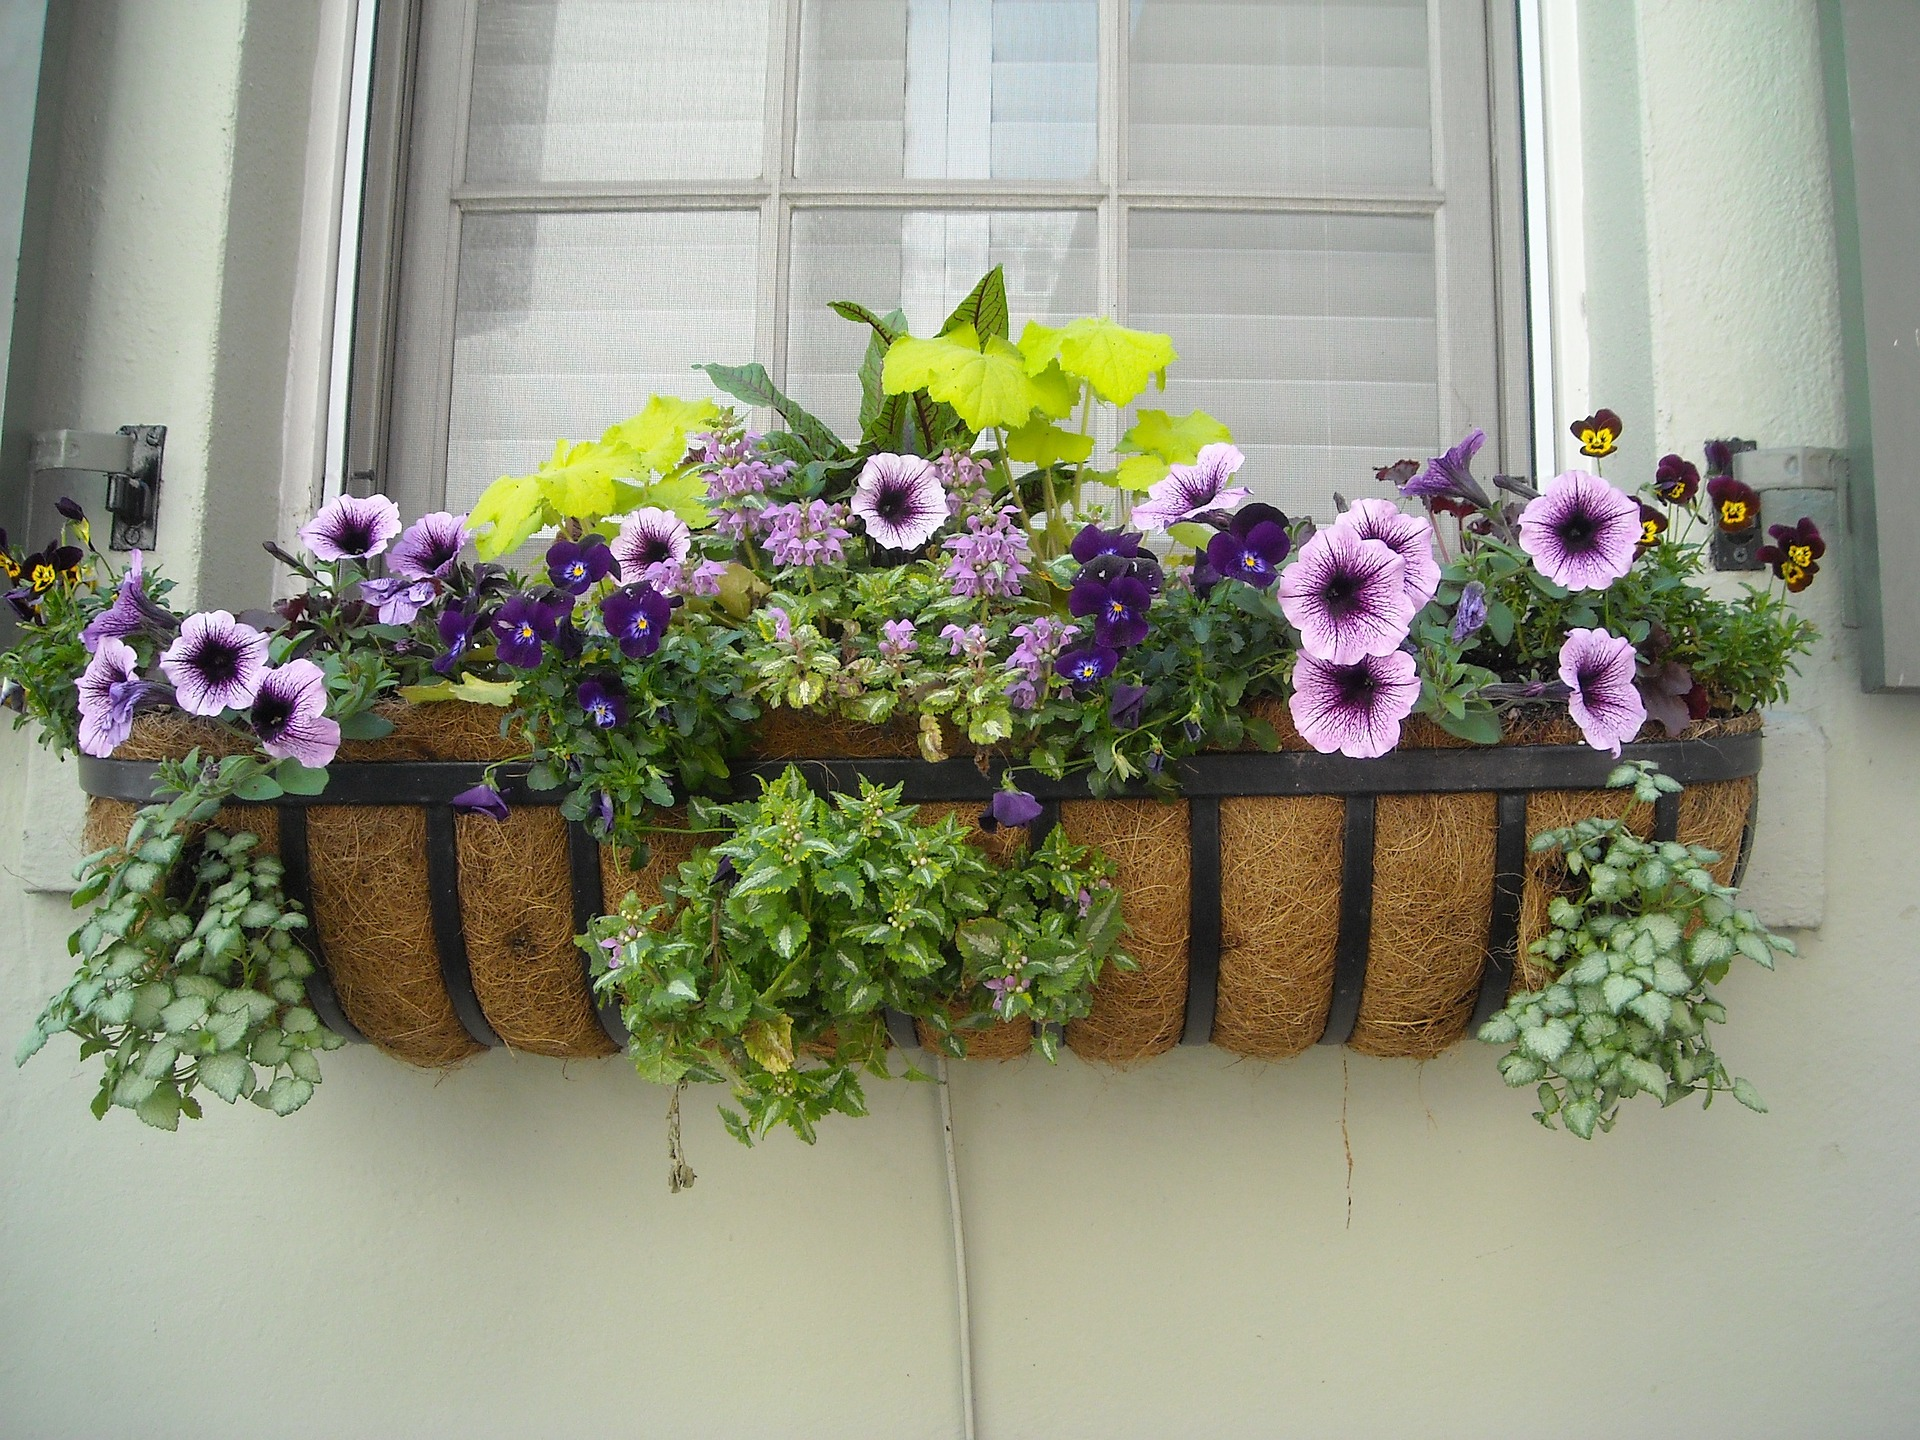 https://pixabay.com/en/window-box-flowers-window-box-891985/